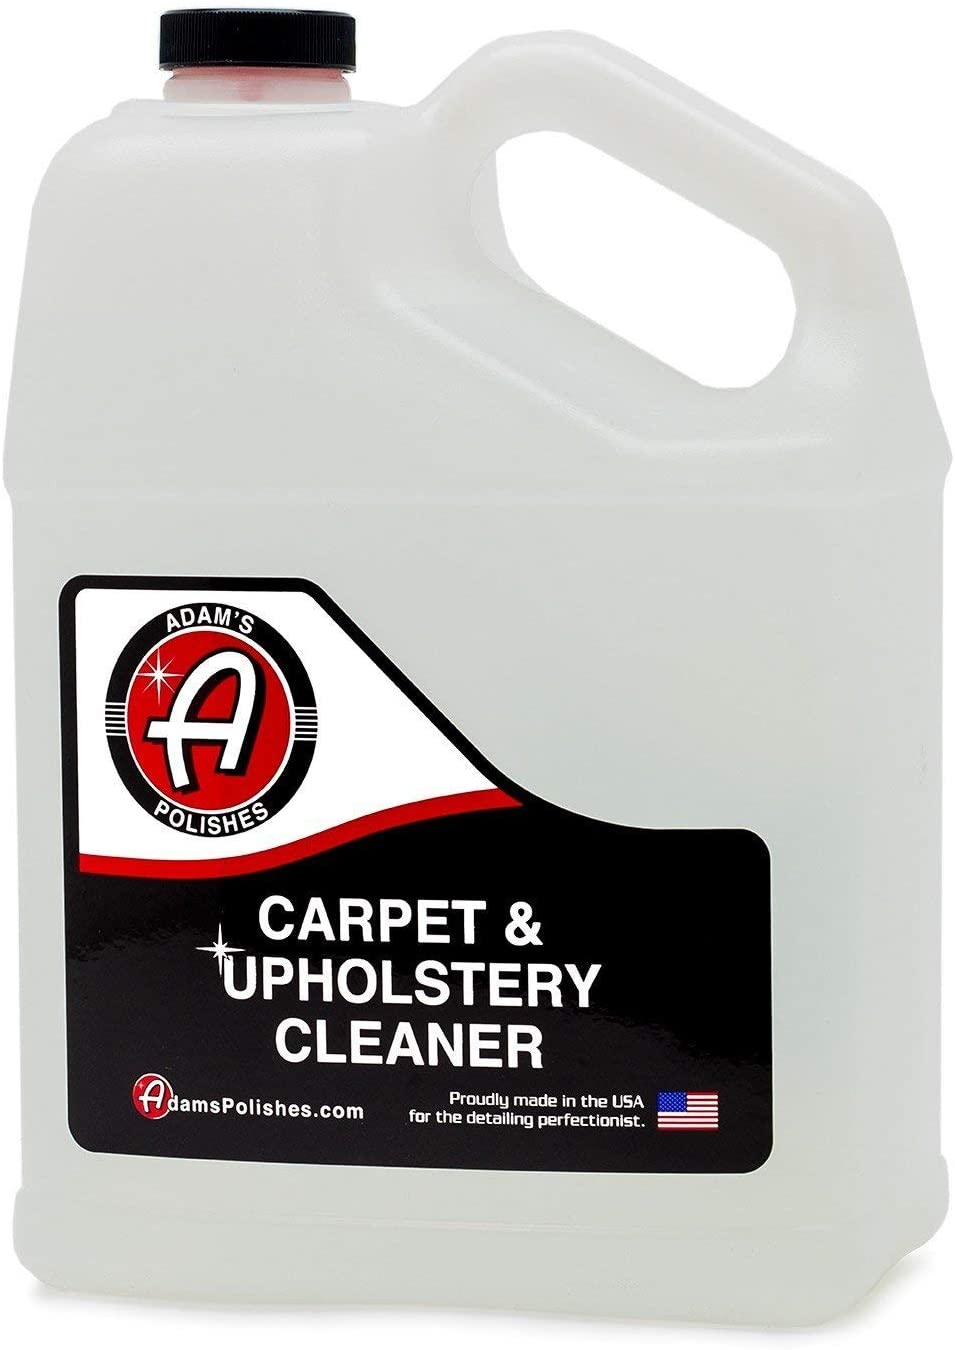 Adam's Carpet & Upholstery Cleaner - Easy to Use and Effective on Even The Worst Stains - Safe, Non-Toxic and Hypoallergenic (1 Gallon)